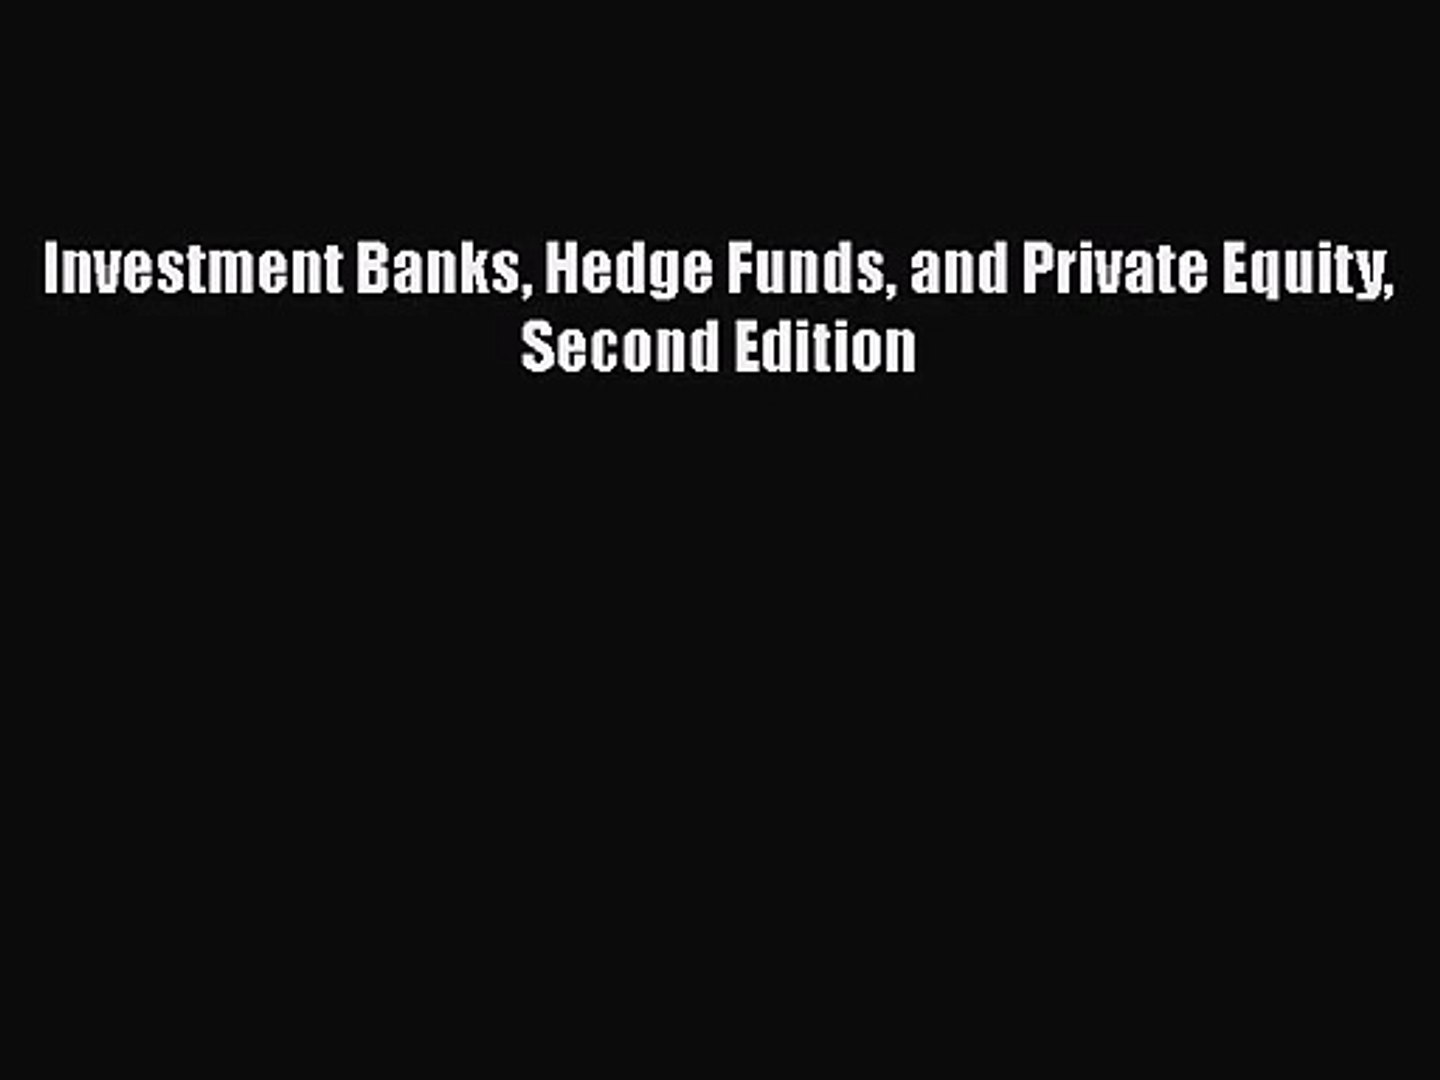 investment banks hedge funds and private equity stowell pdf creator